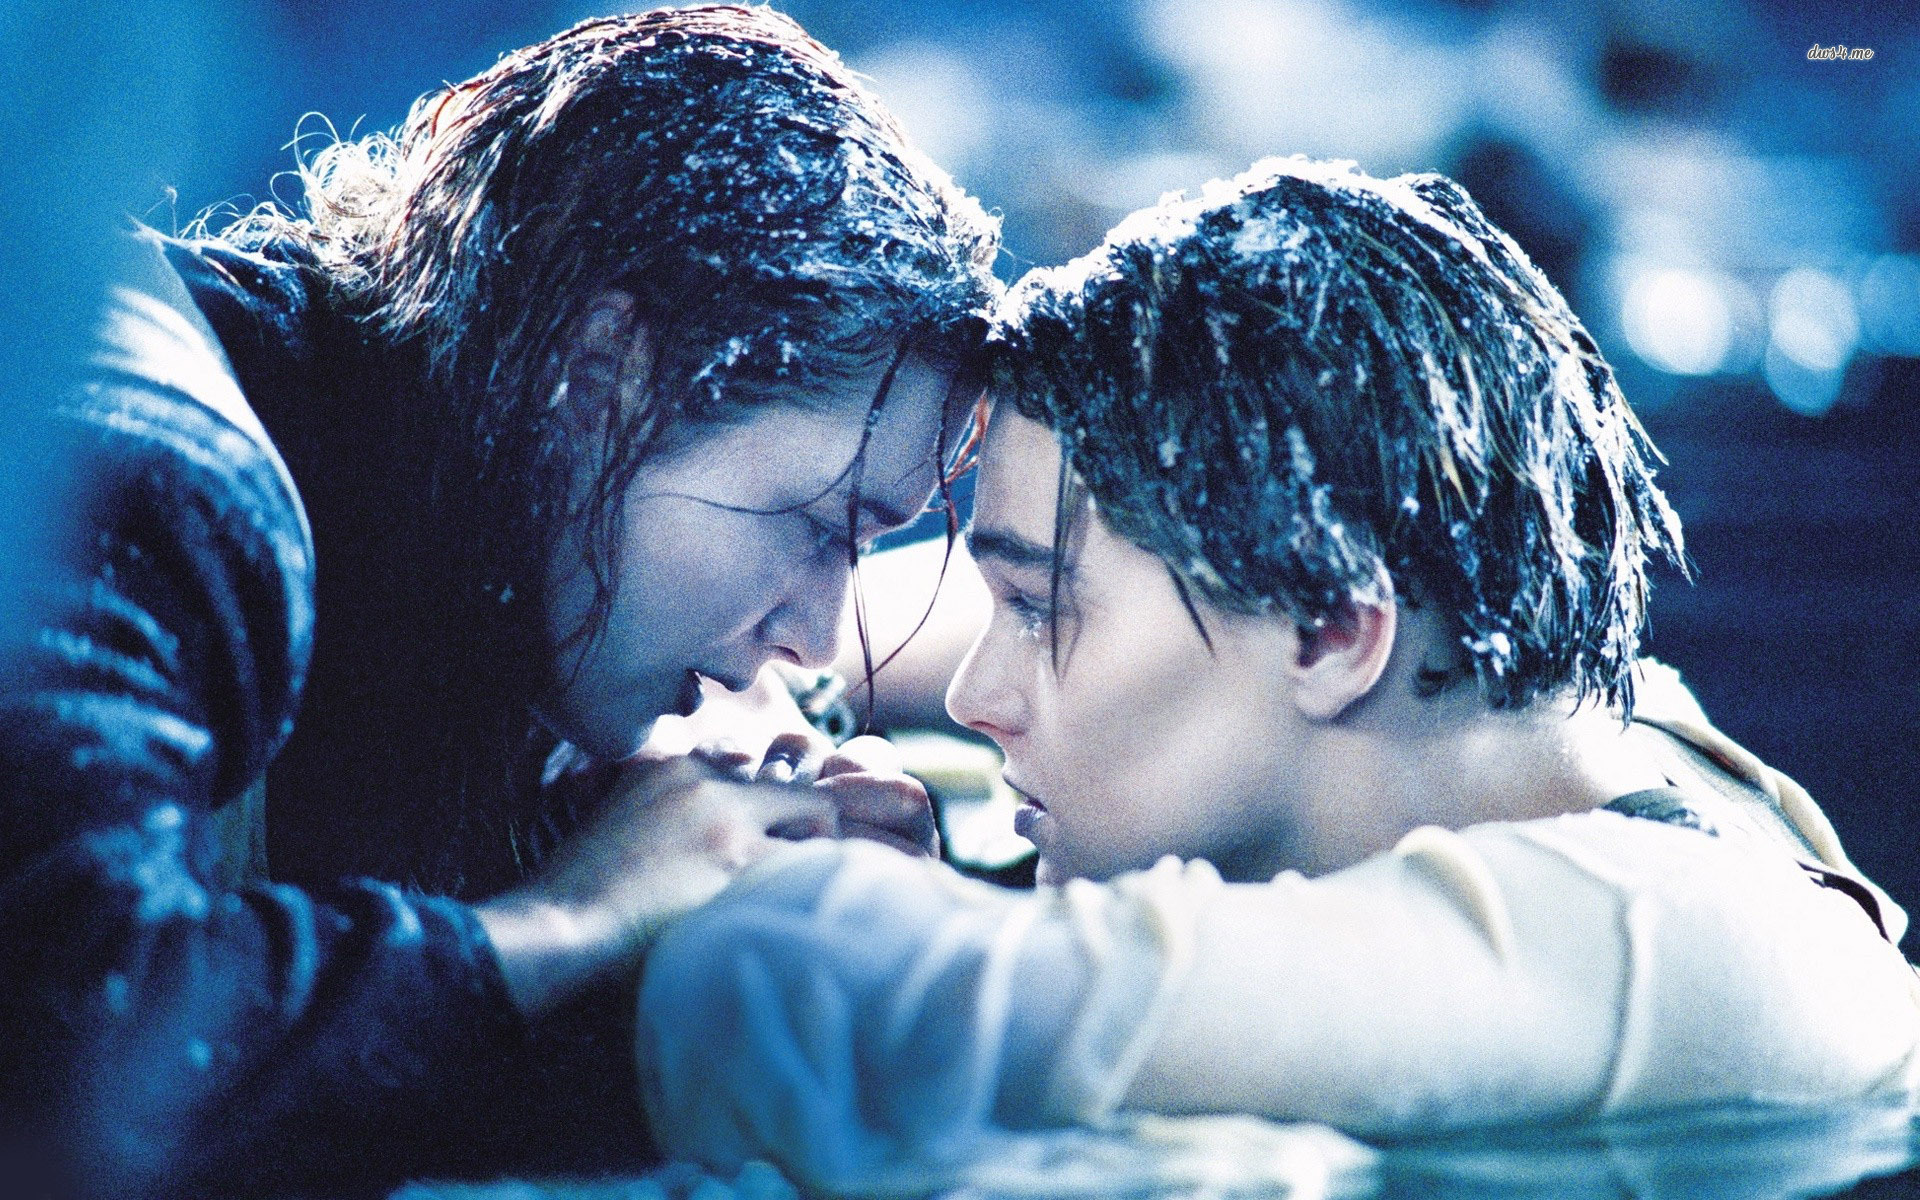 Rose and Jack - Titanic wallpaper - Movie wallpapers - #12440